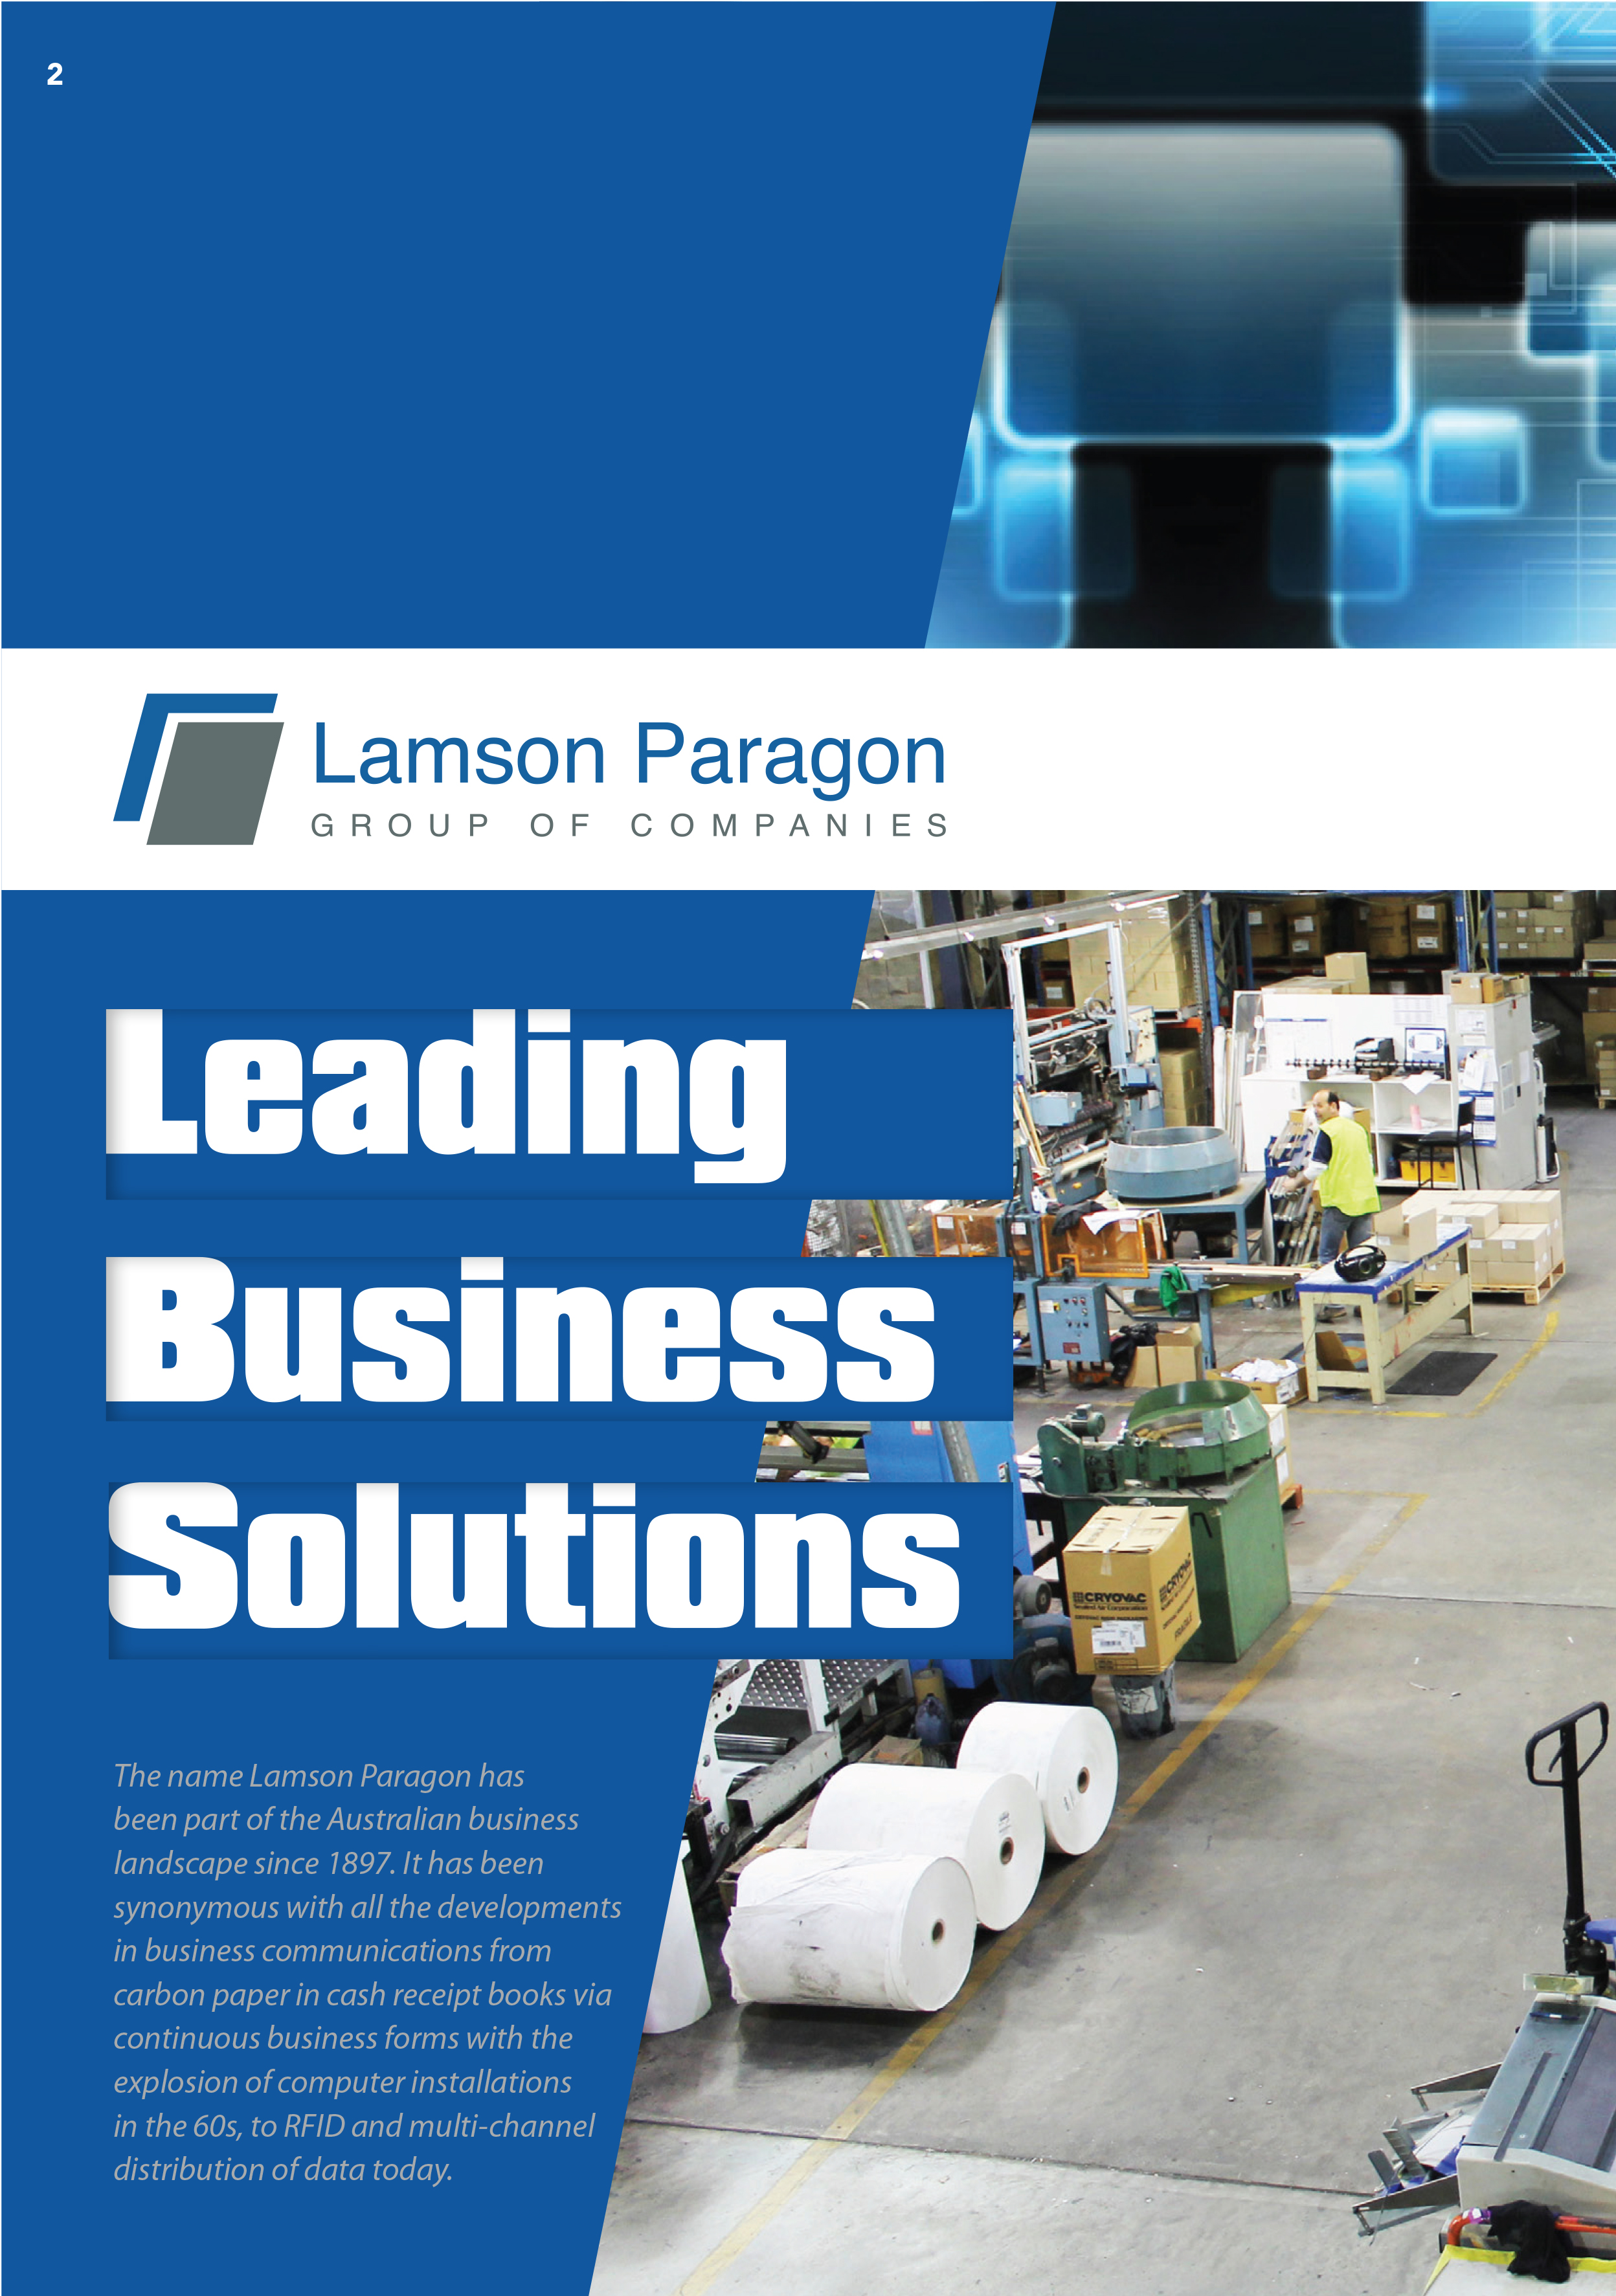 Leading Business Solutions